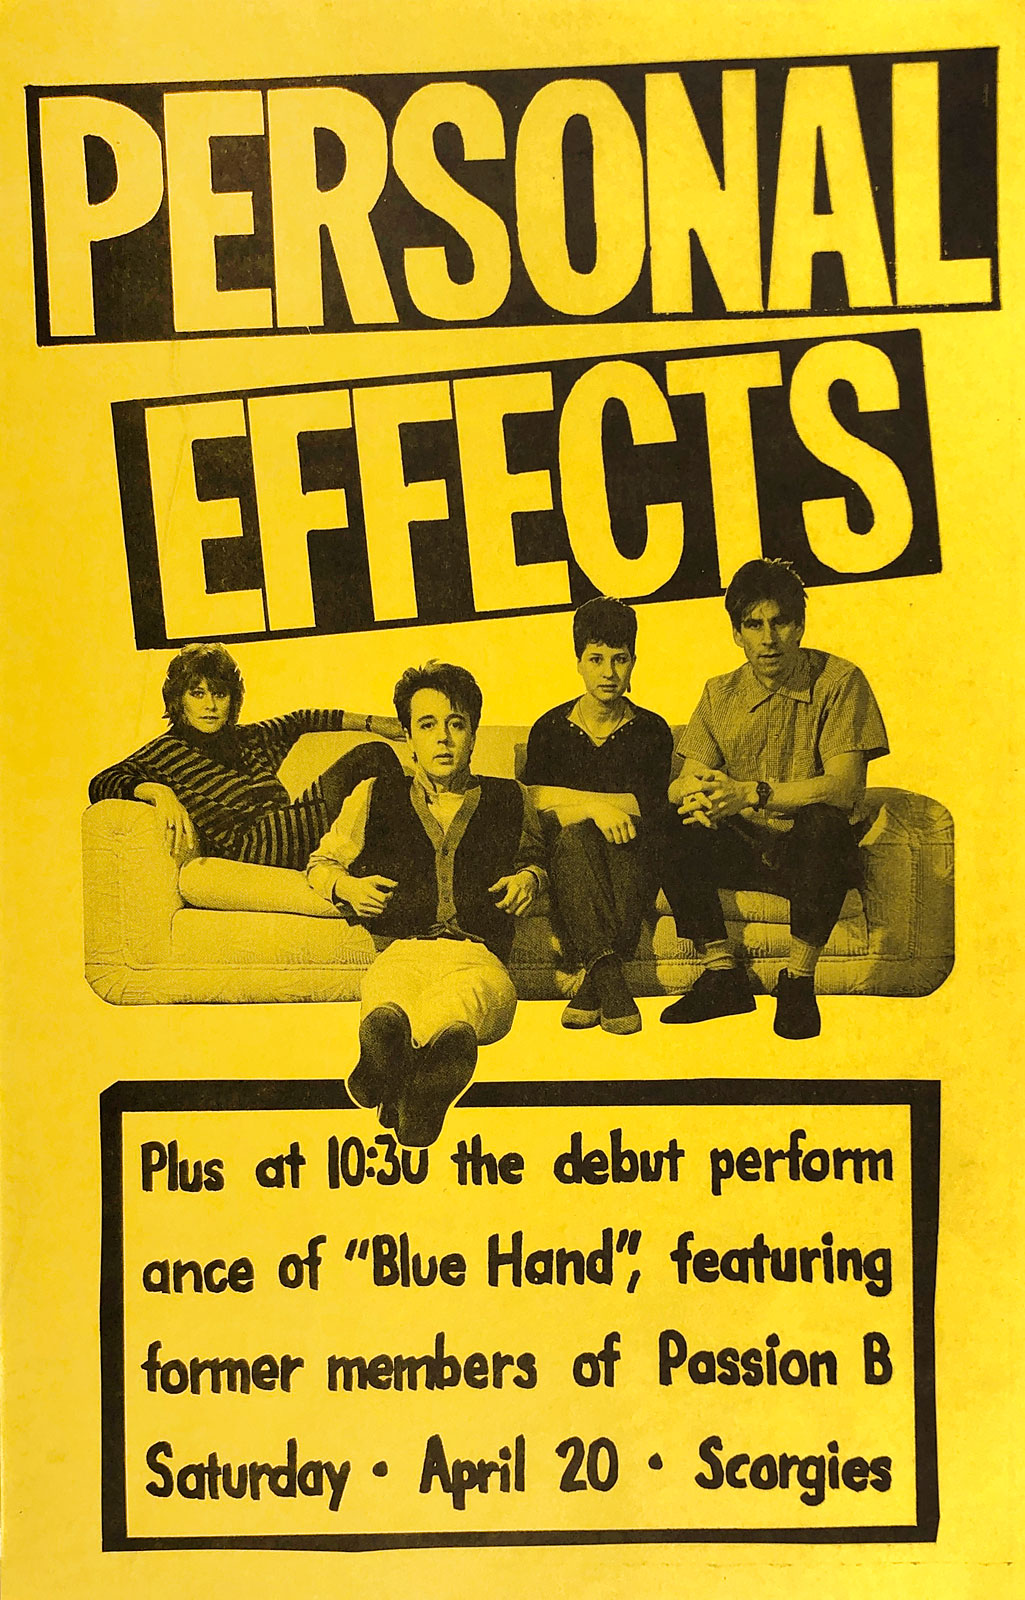 Poster for Personal Effects with Blue Hand at Jazzberry's in Rochester, New York on 04.20.1985. This was the debut performance of Blue Hand featuring Brian Horton and former members of Passion B.